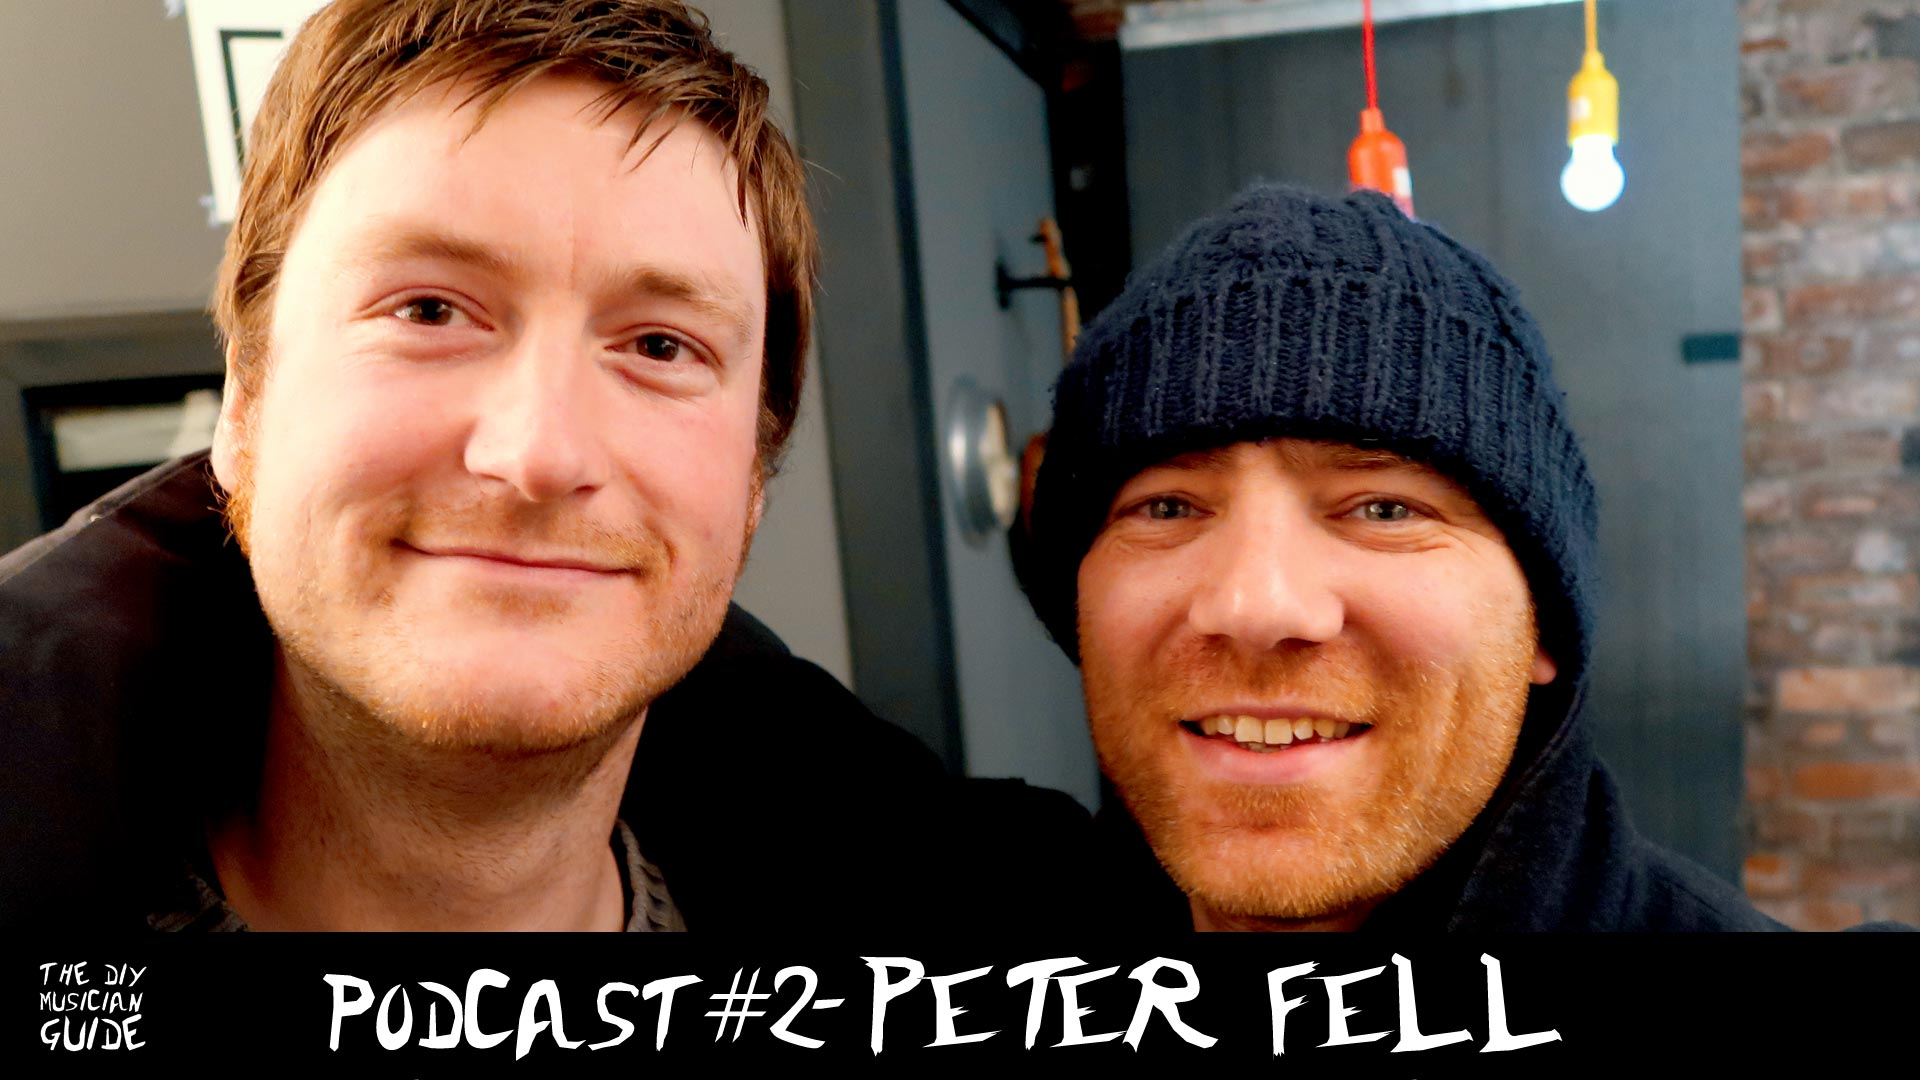 Peter Fell | The DIY Musician Guide Podcast